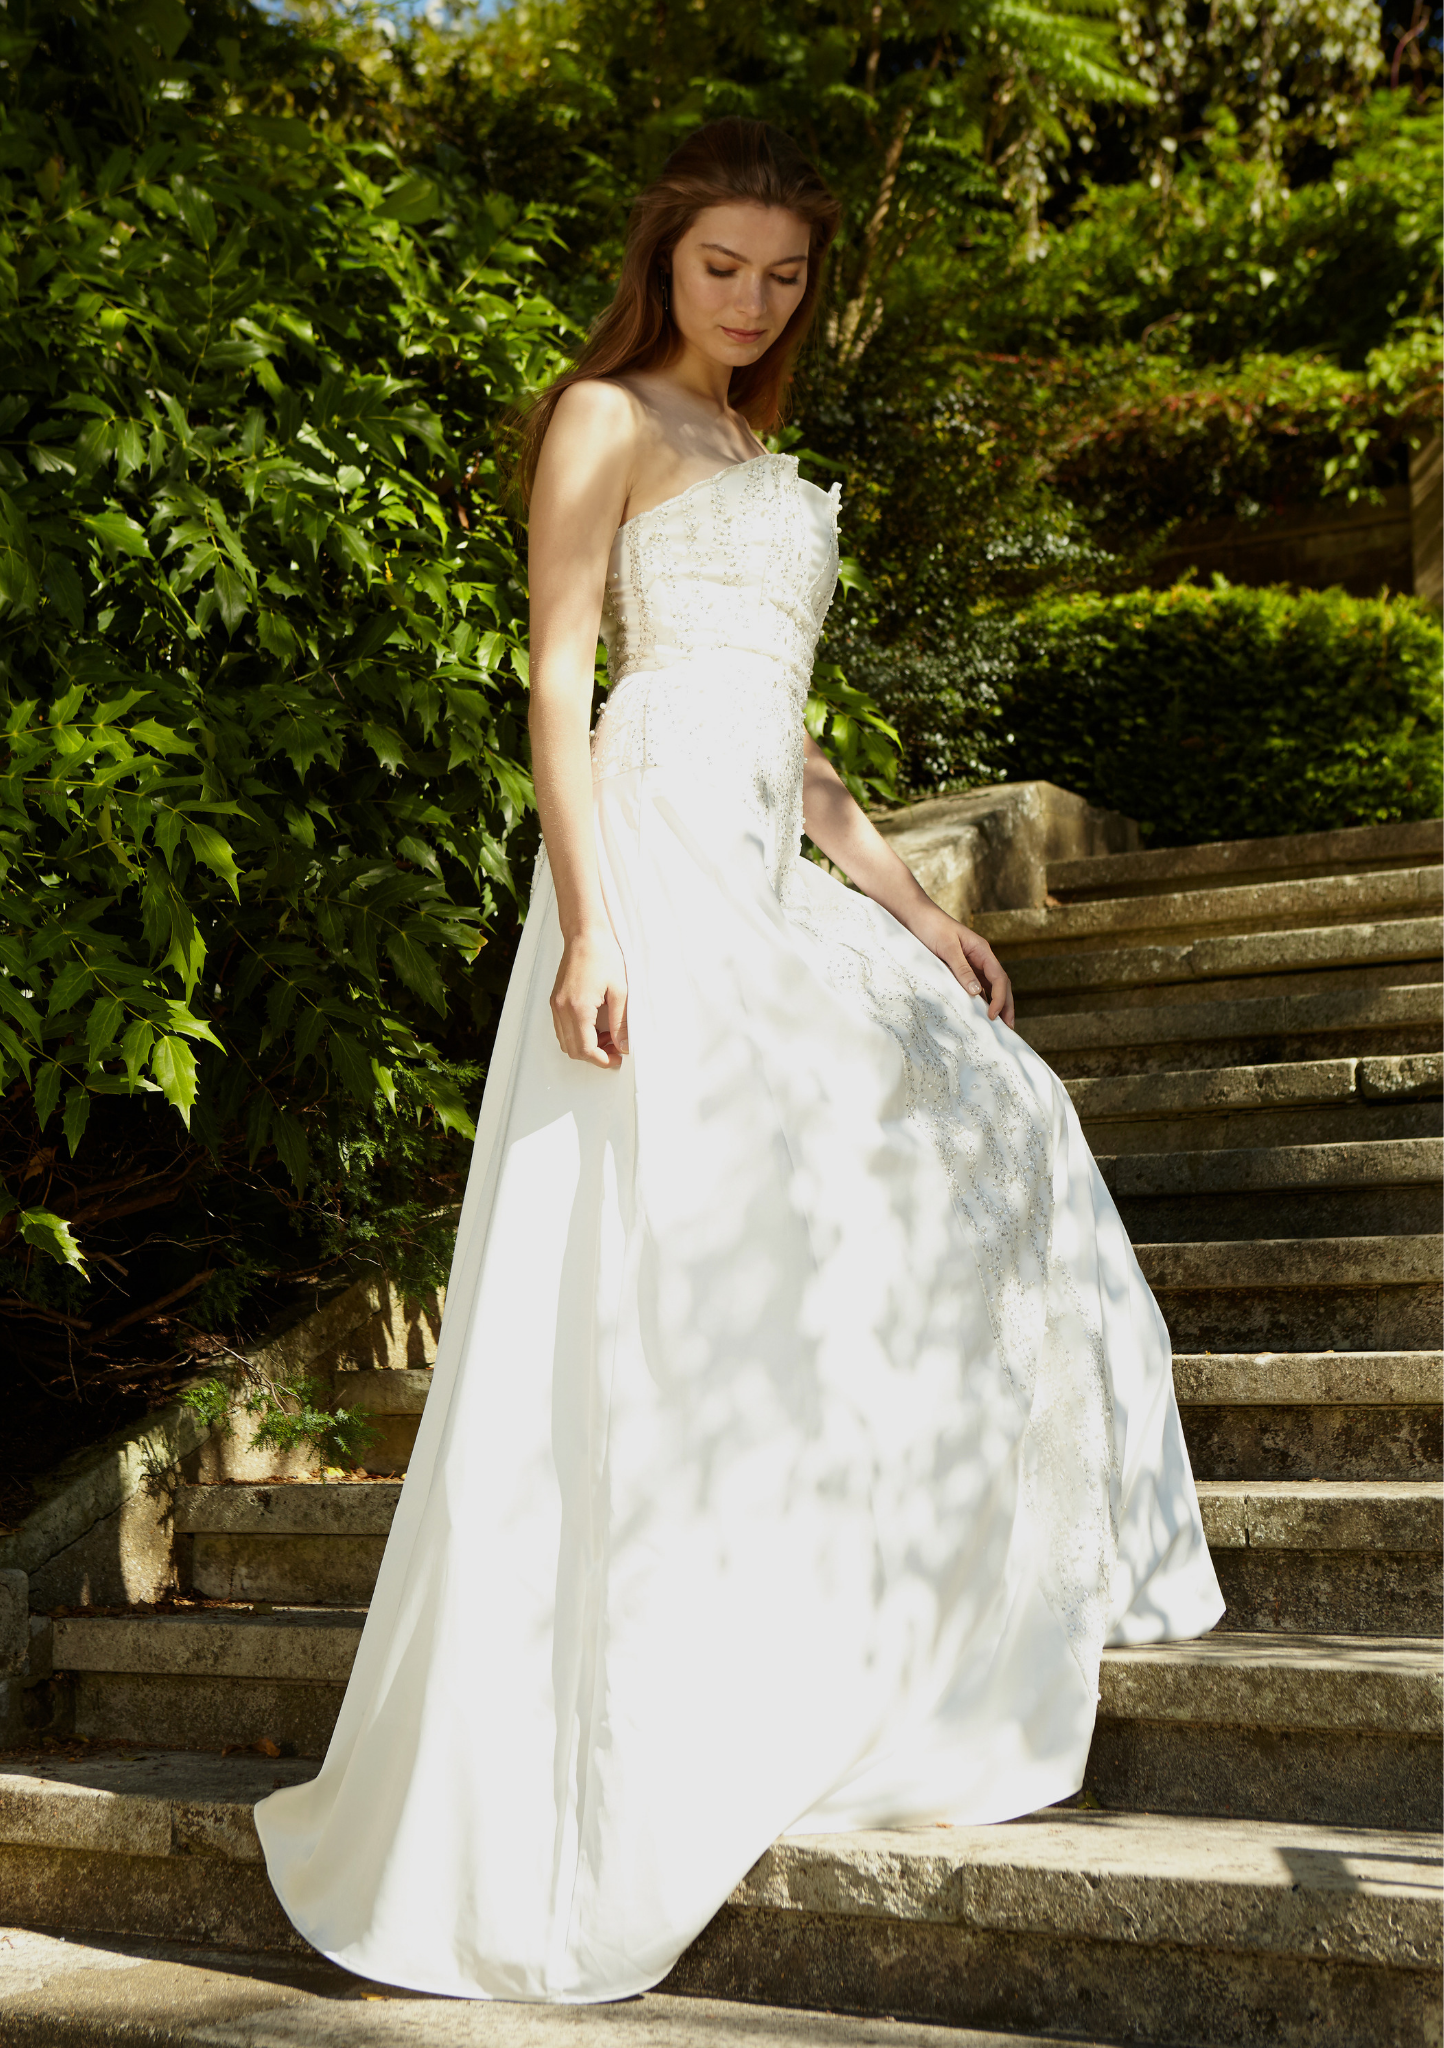 Bonnie Bridal Gown - HEMYCA London